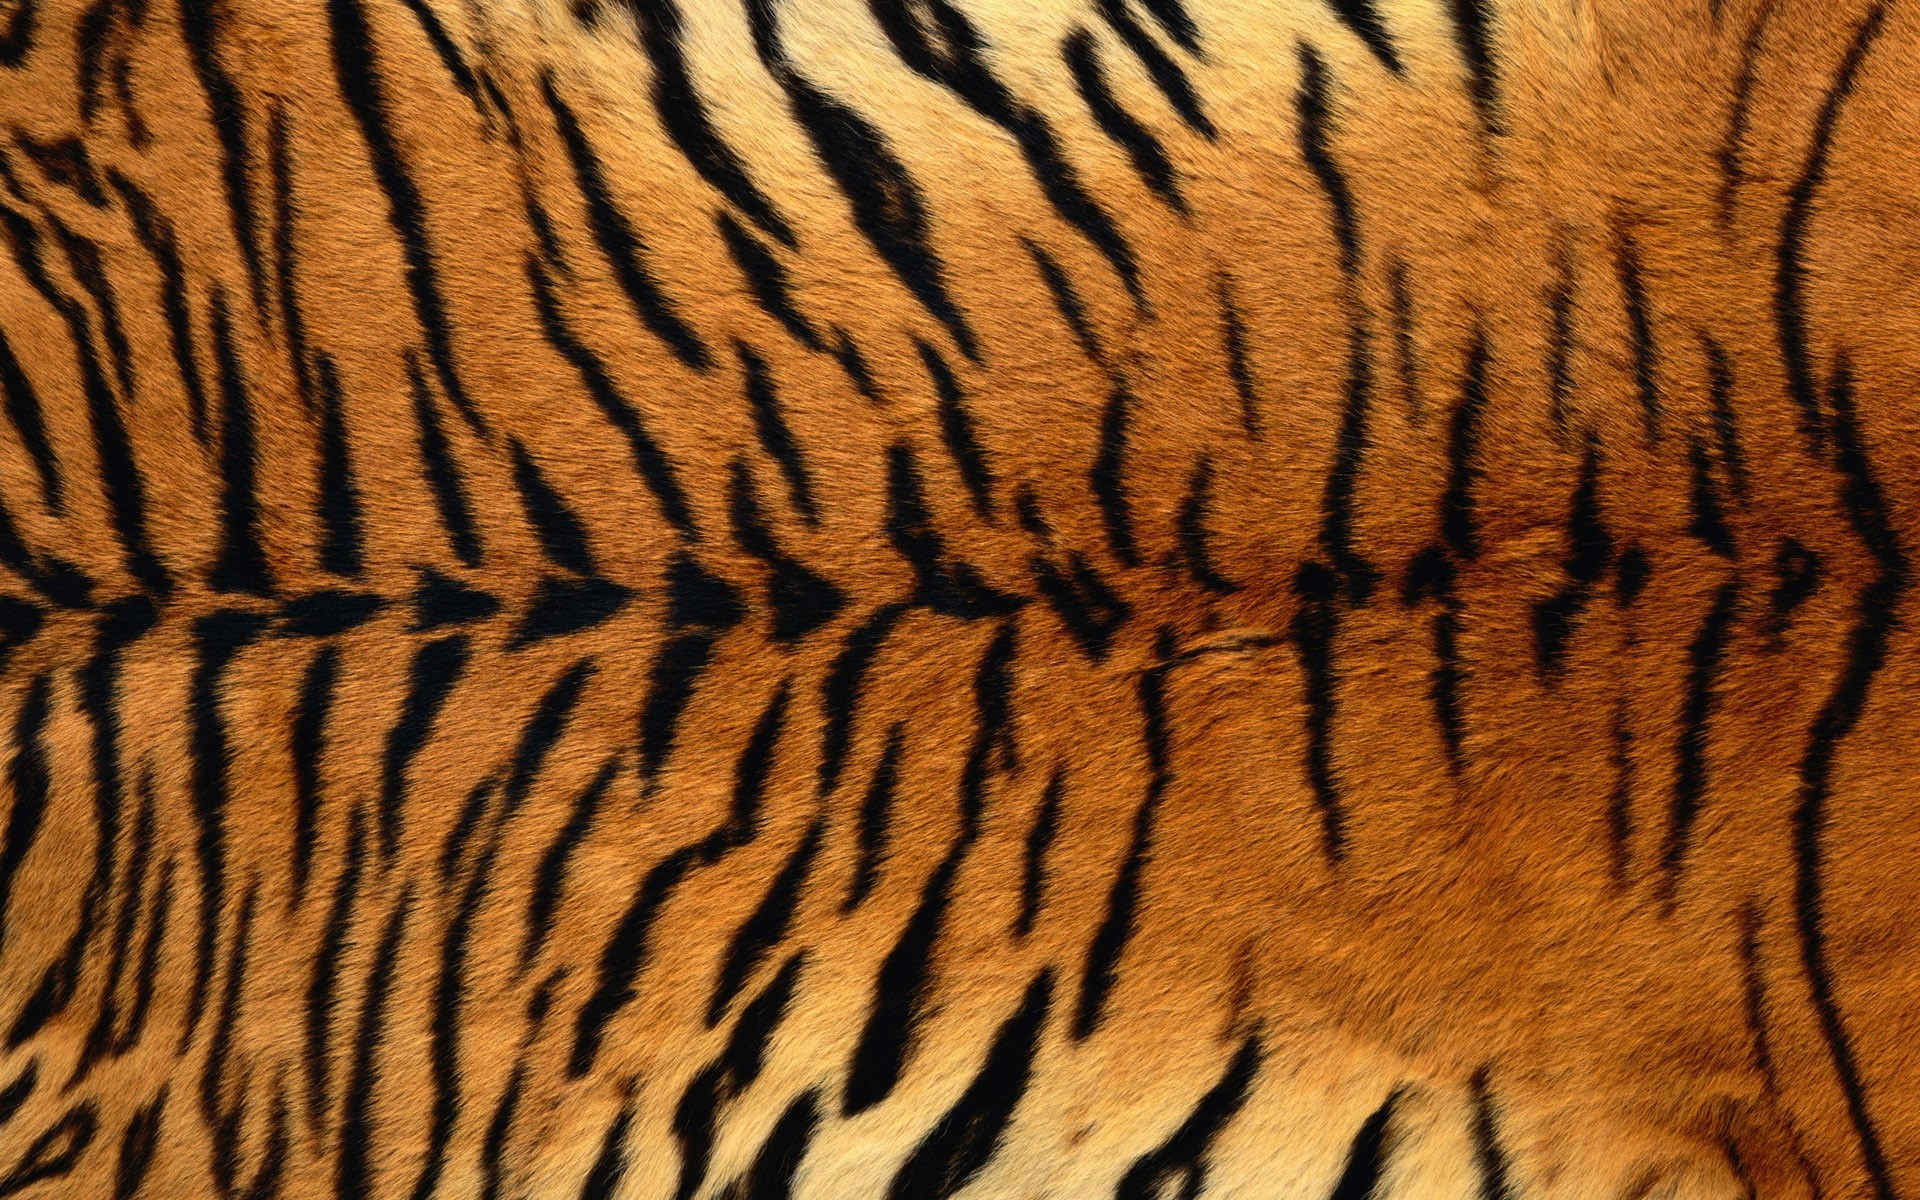 Tigers Textures animal print HD Wallpaper